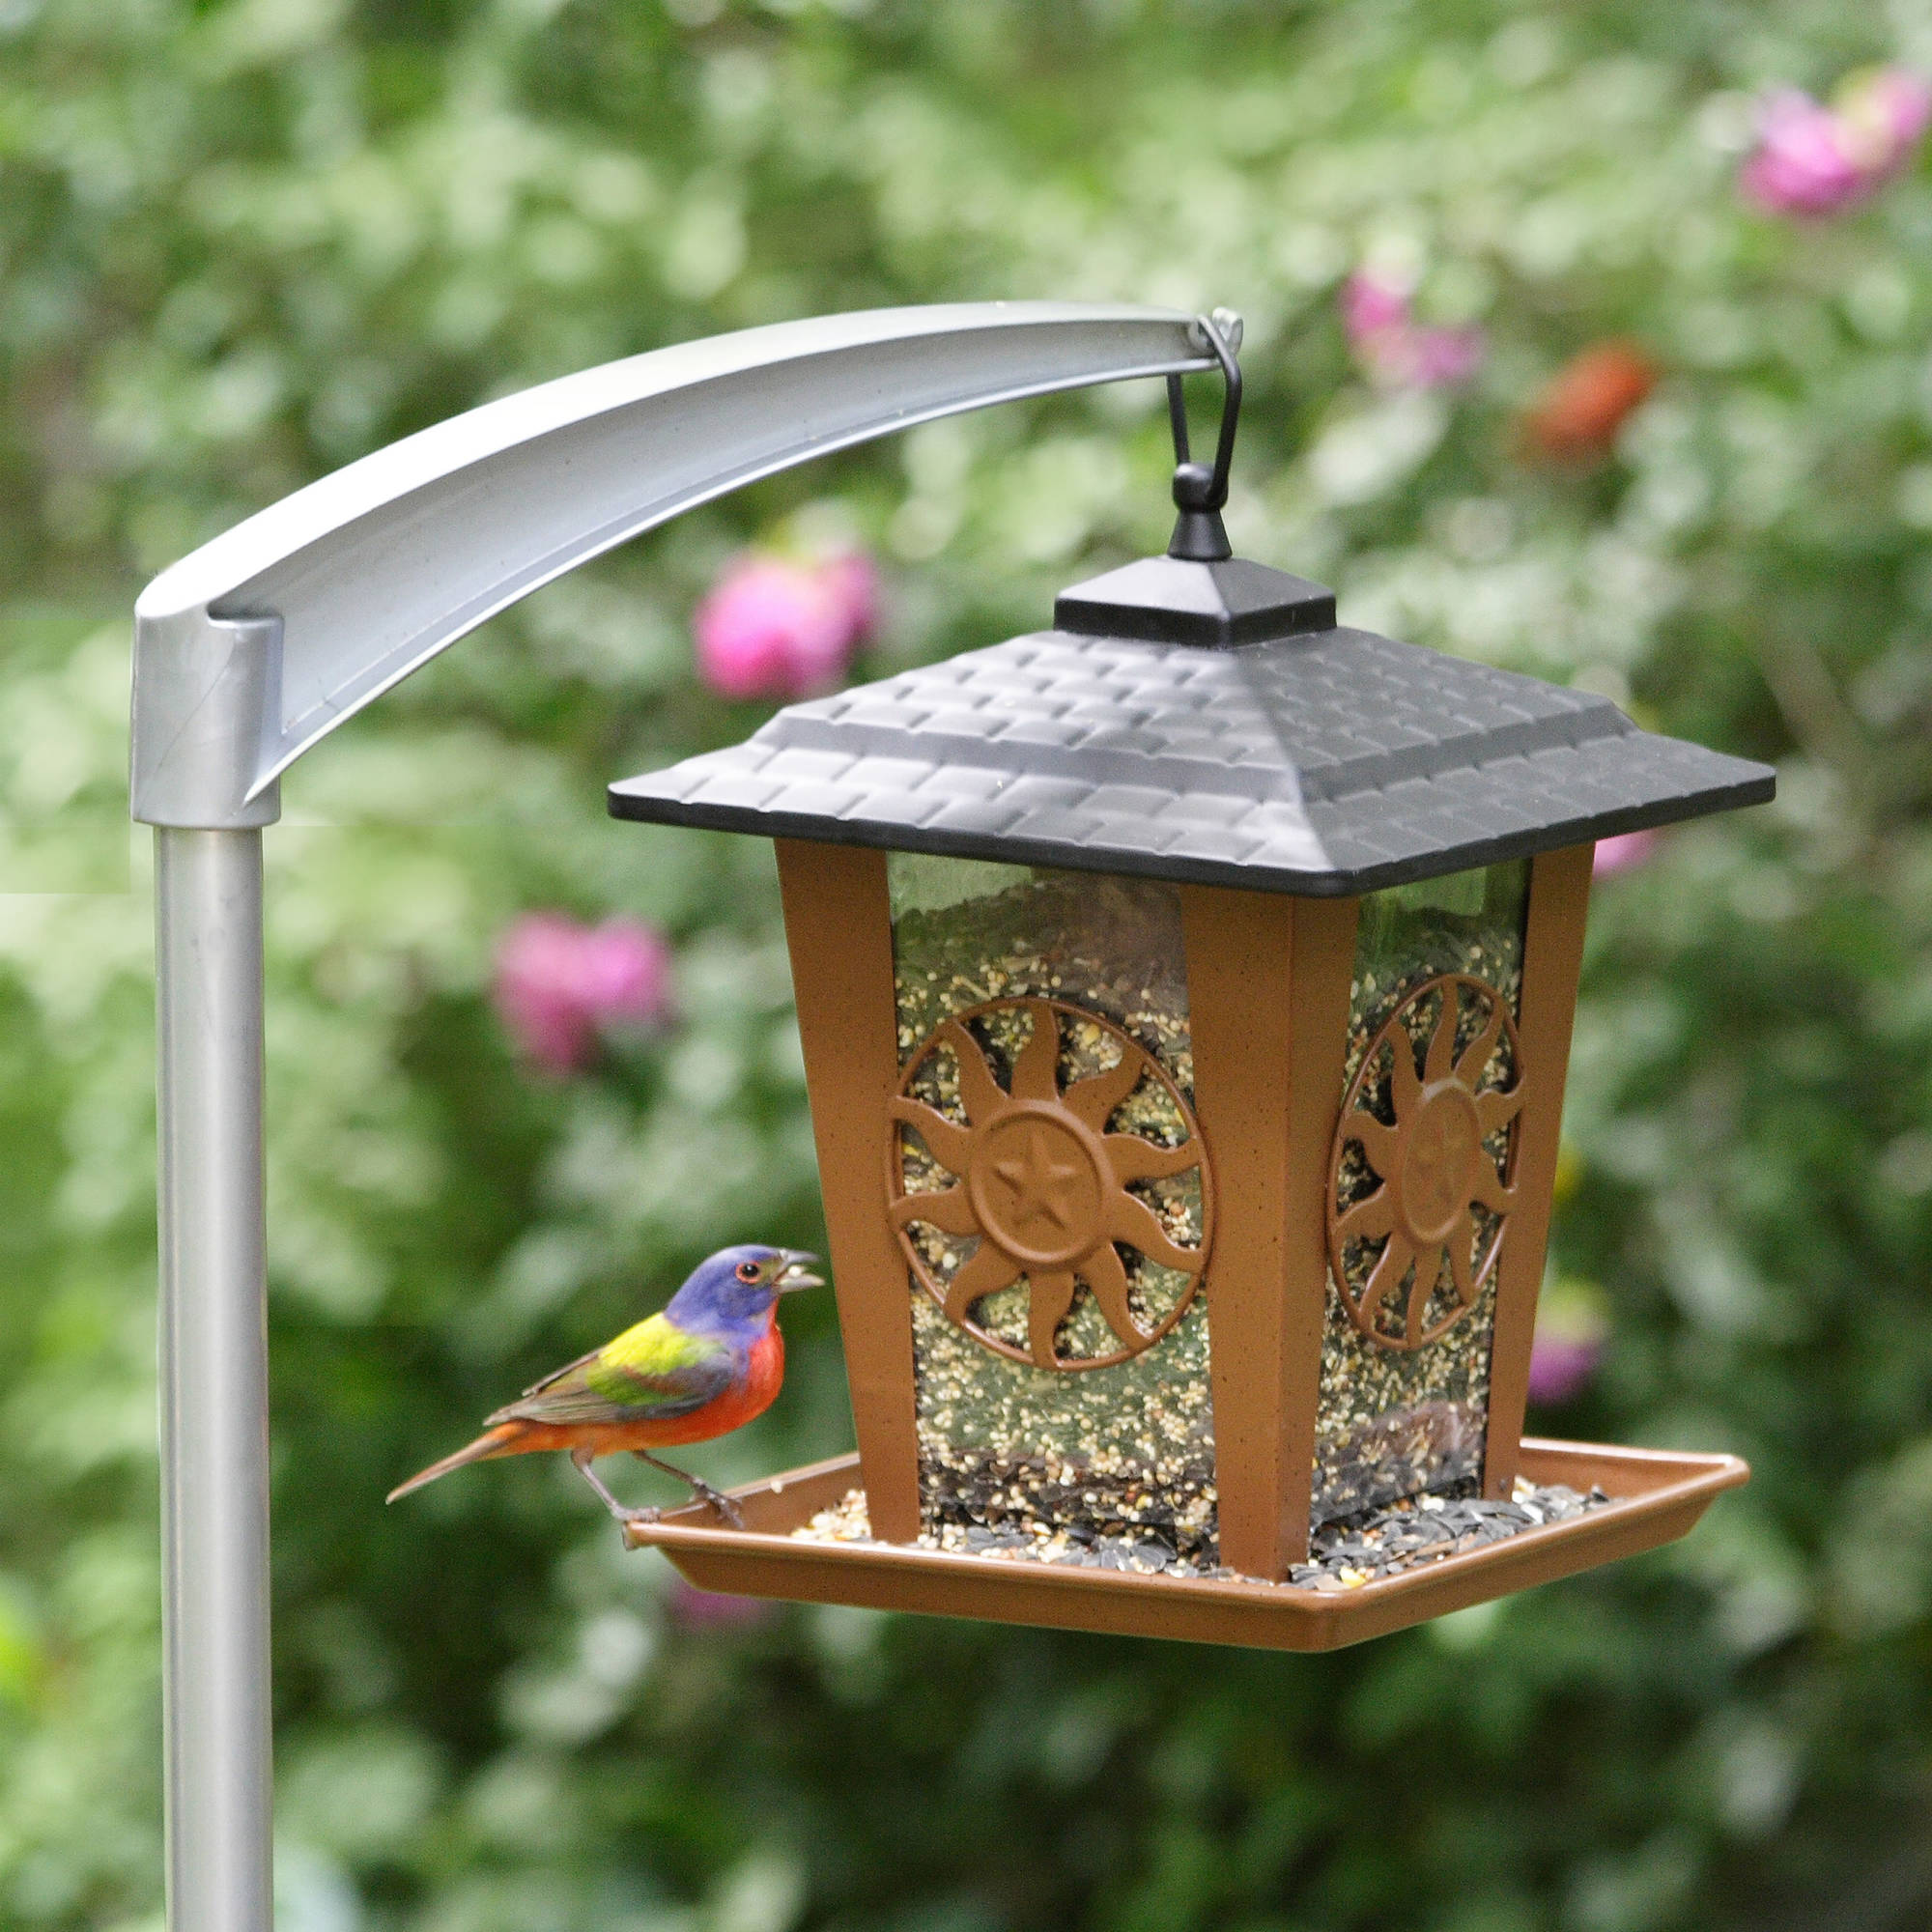 bird birds ground to com img visit the feed brimfields other starlings feeder feeders are